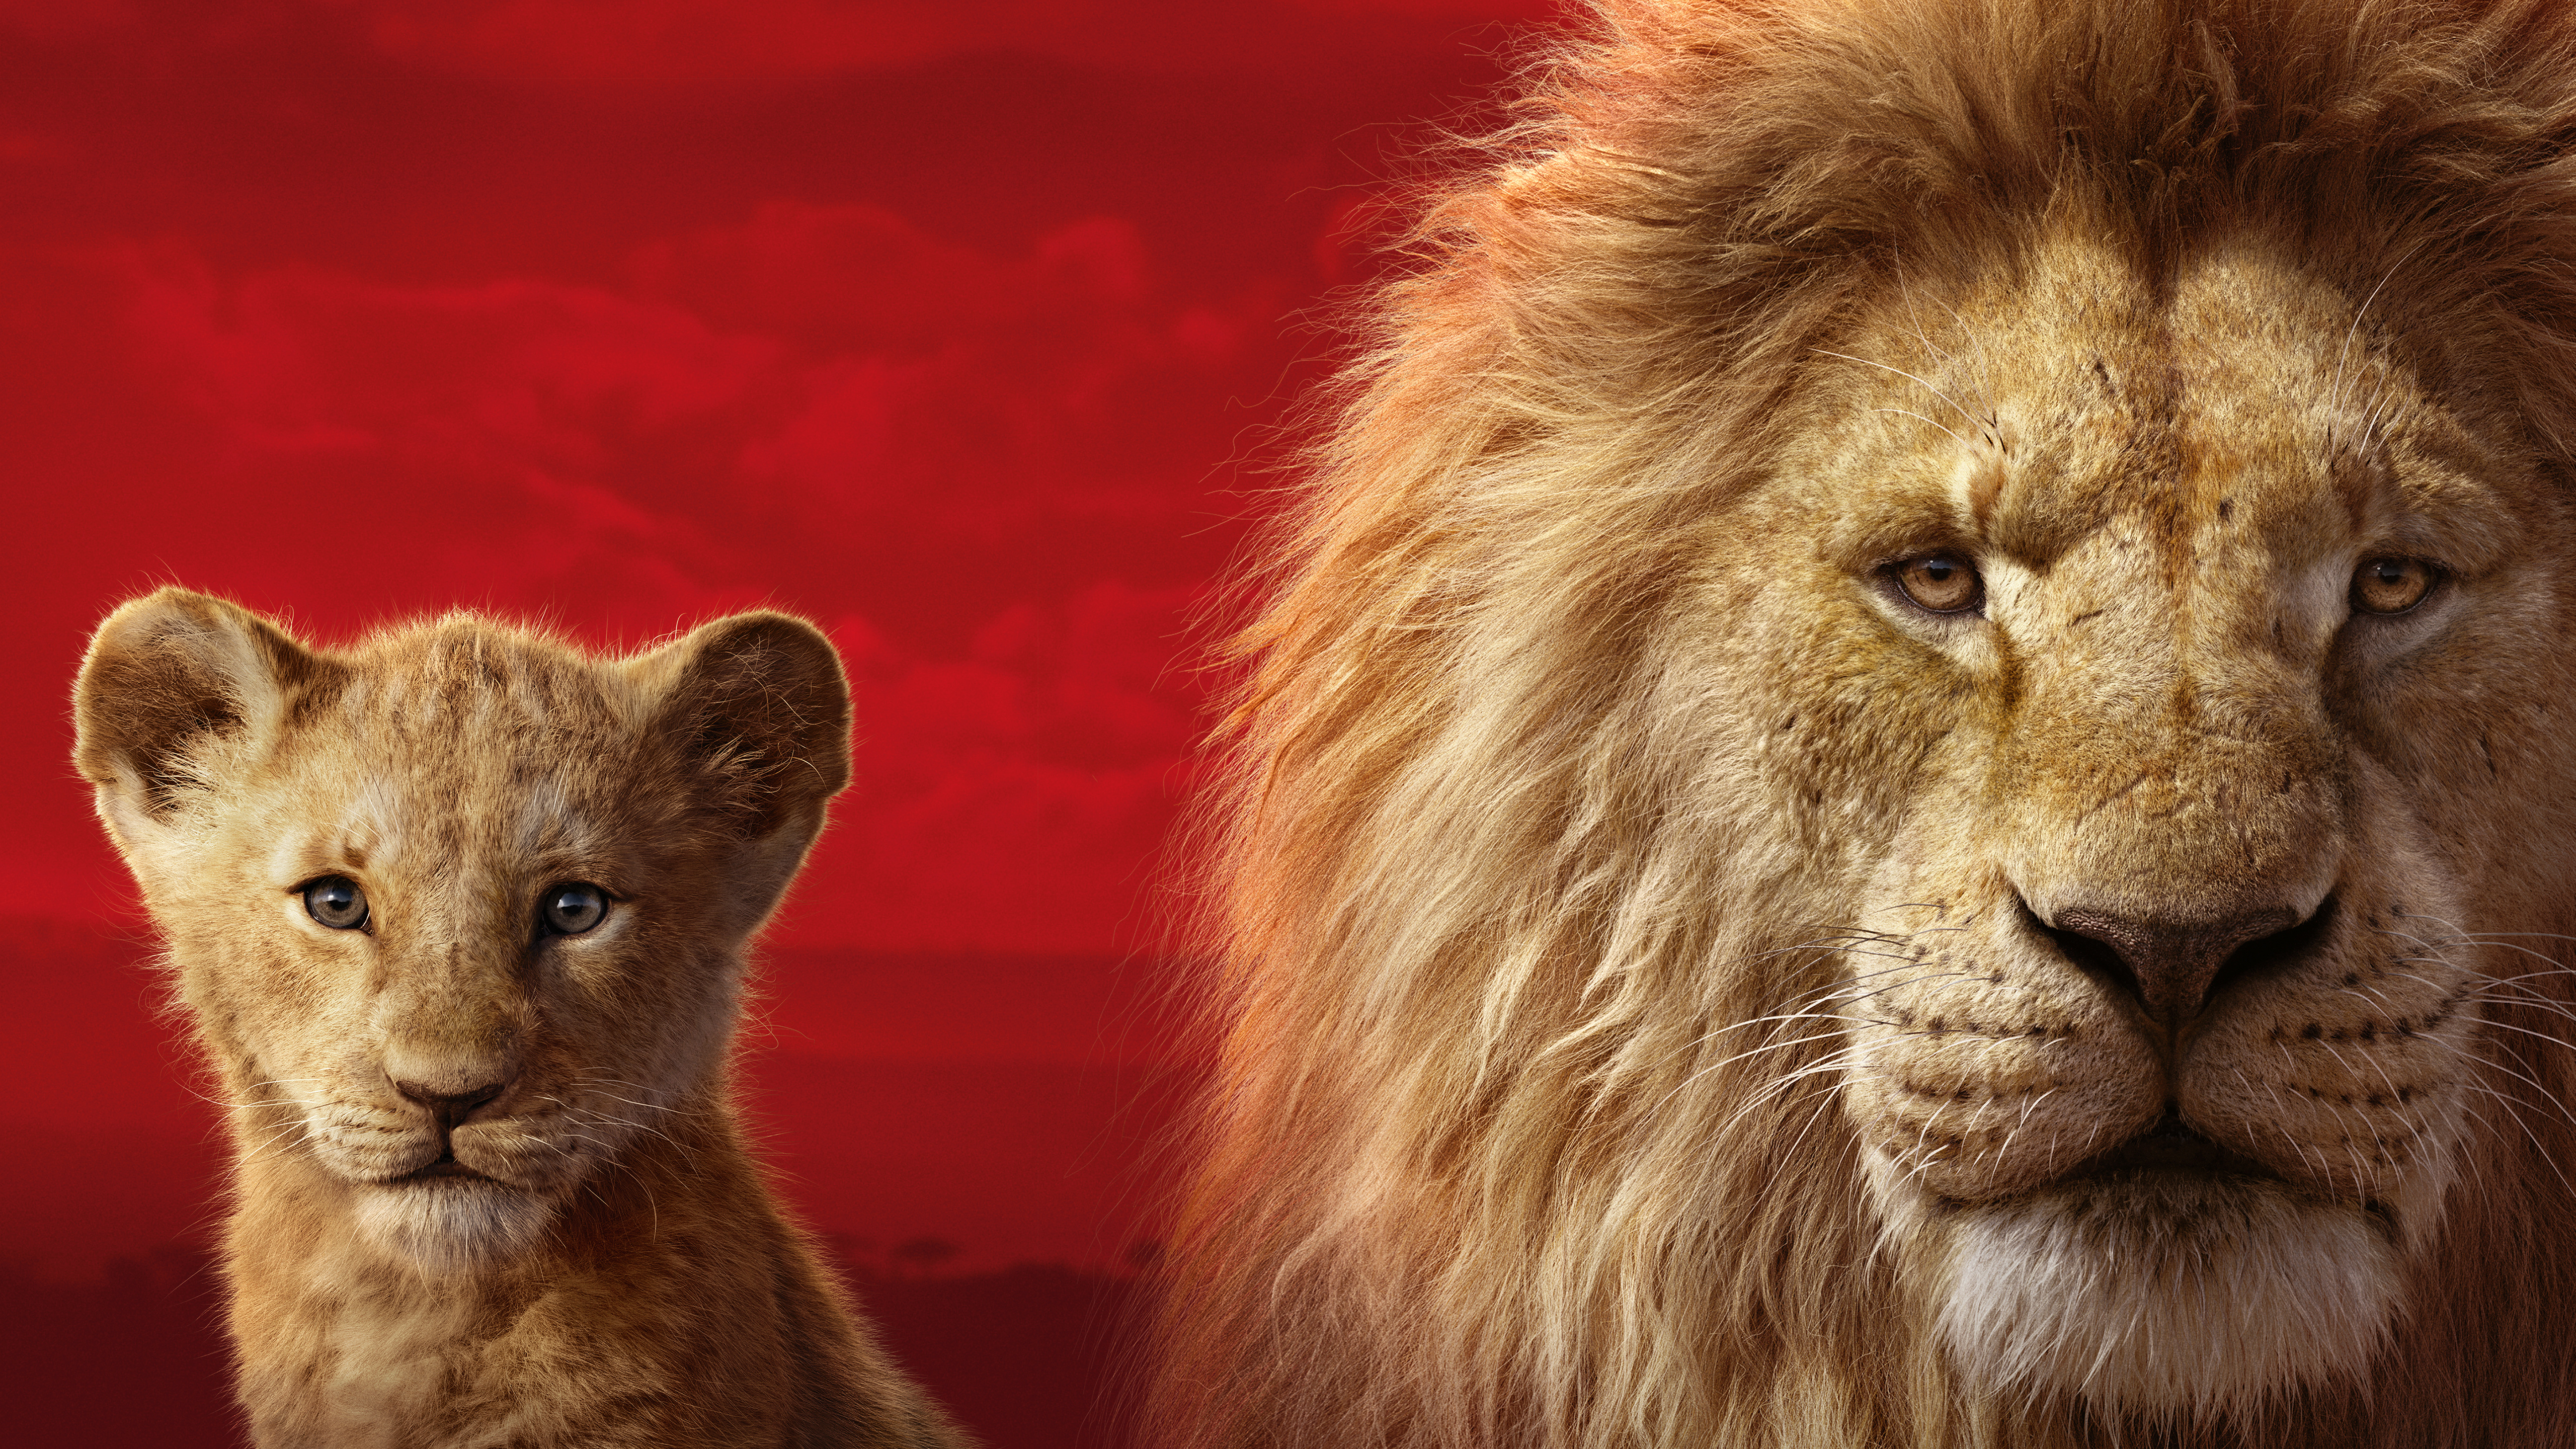 The Lion King 2019 5k Hd Movies 4k Wallpapers Images